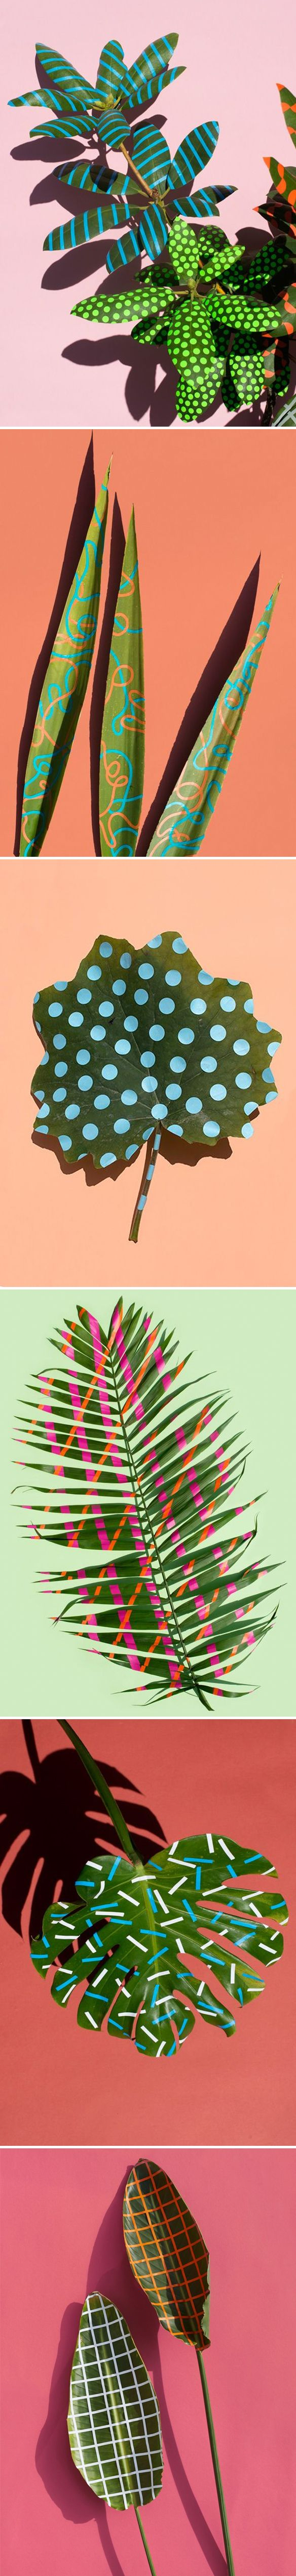 sarah illenberger. Plain backgrounds, patterned objects. Or vice versa